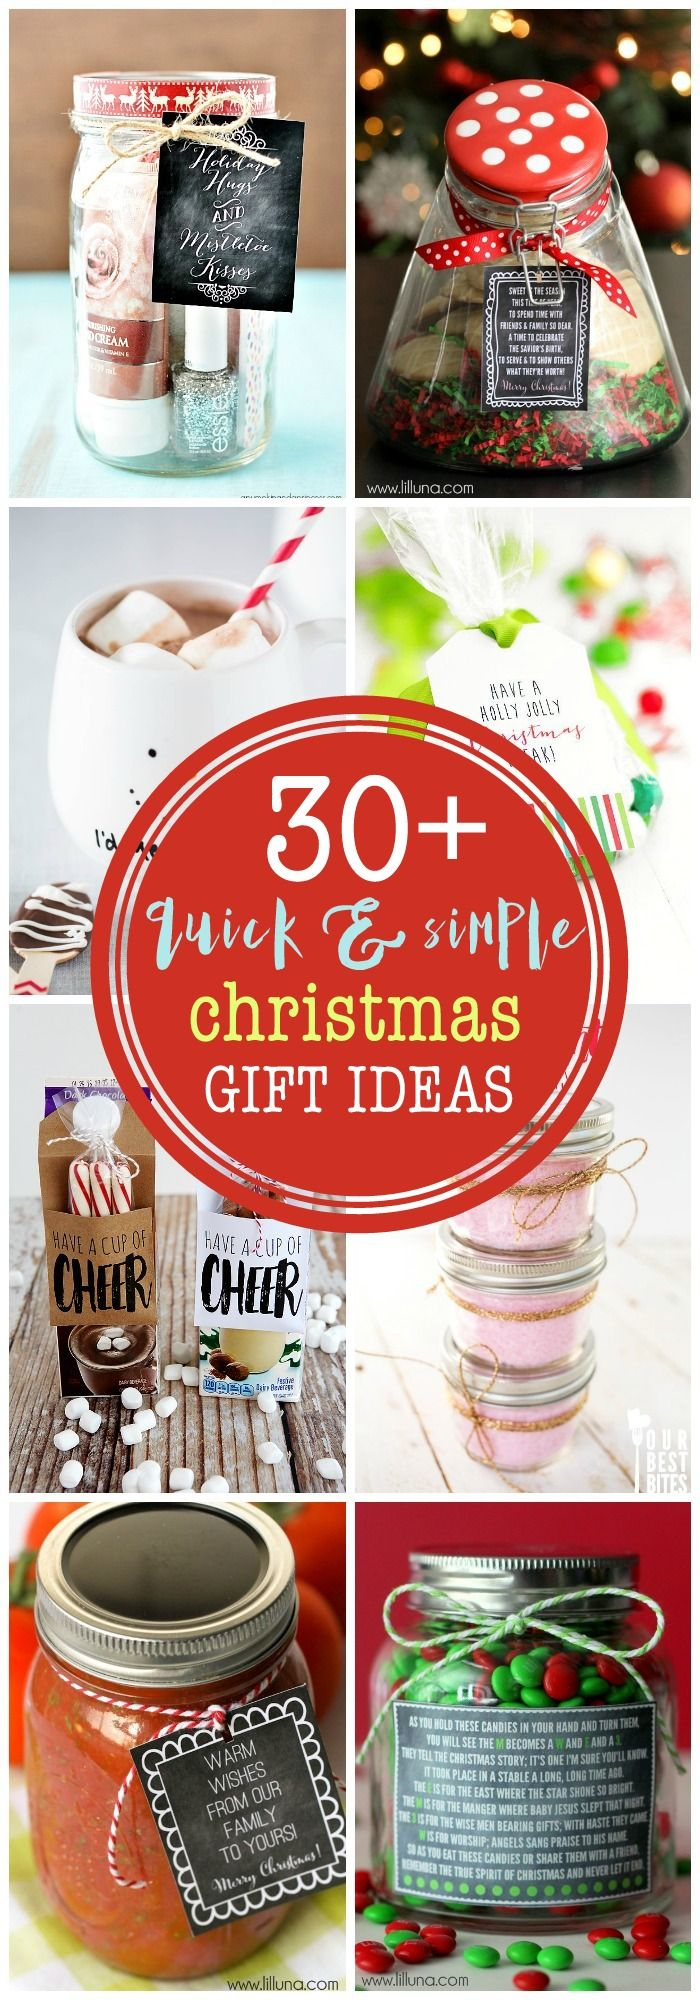 686 best GIFT IDEAS images on Pinterest | Gift ideas, Presents and ...